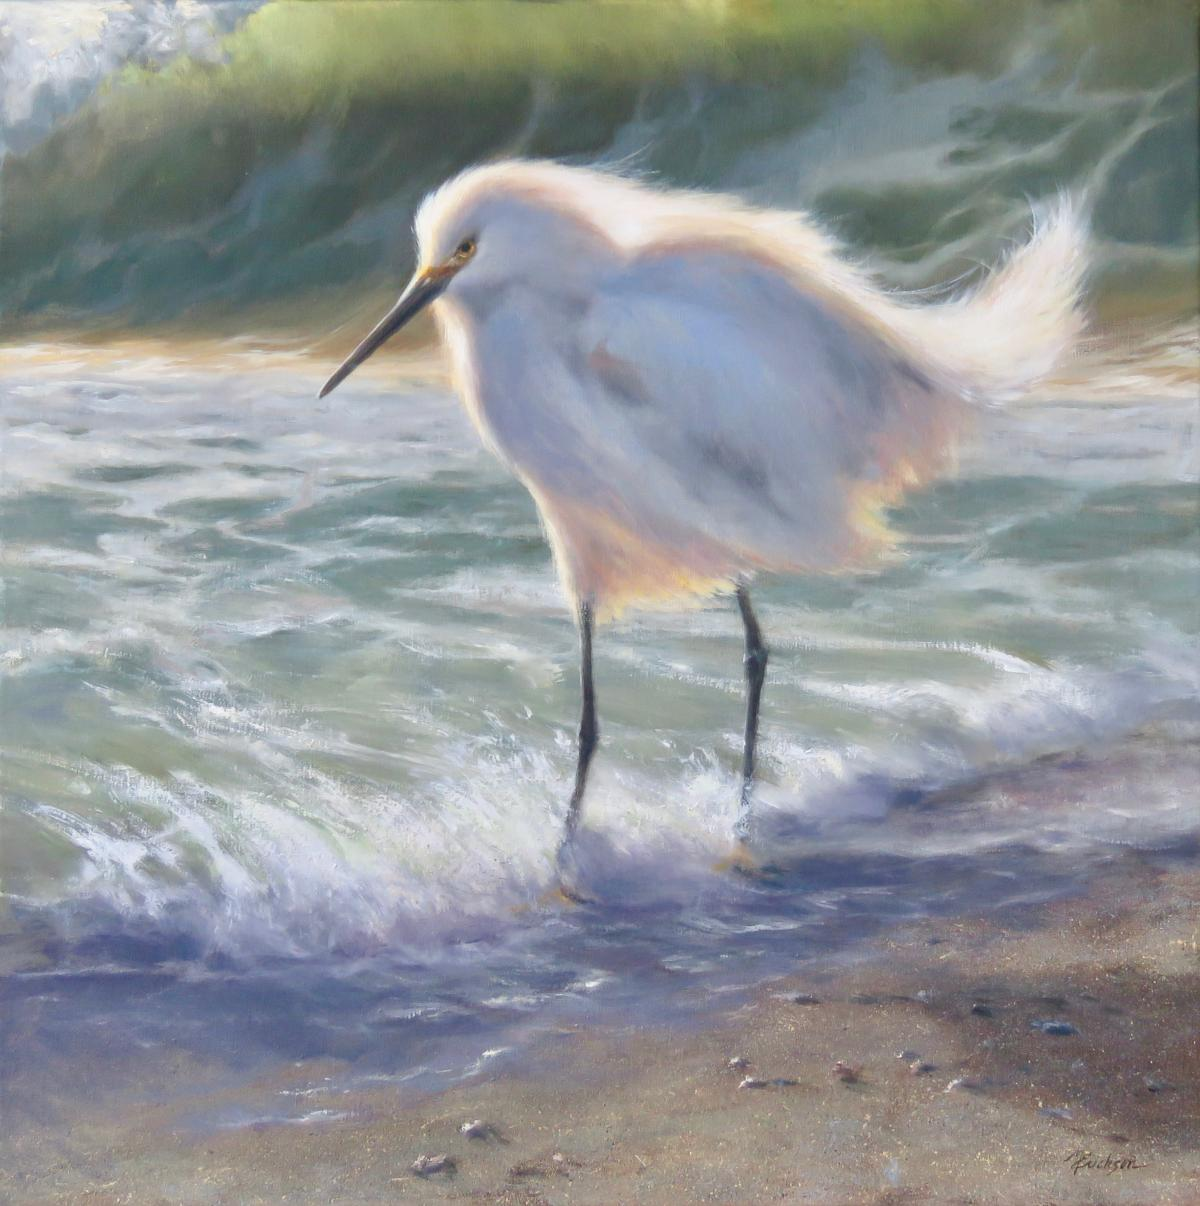 Snowy Surf   Wallhanging by Mary Erickson   Artists for Conservation 2021